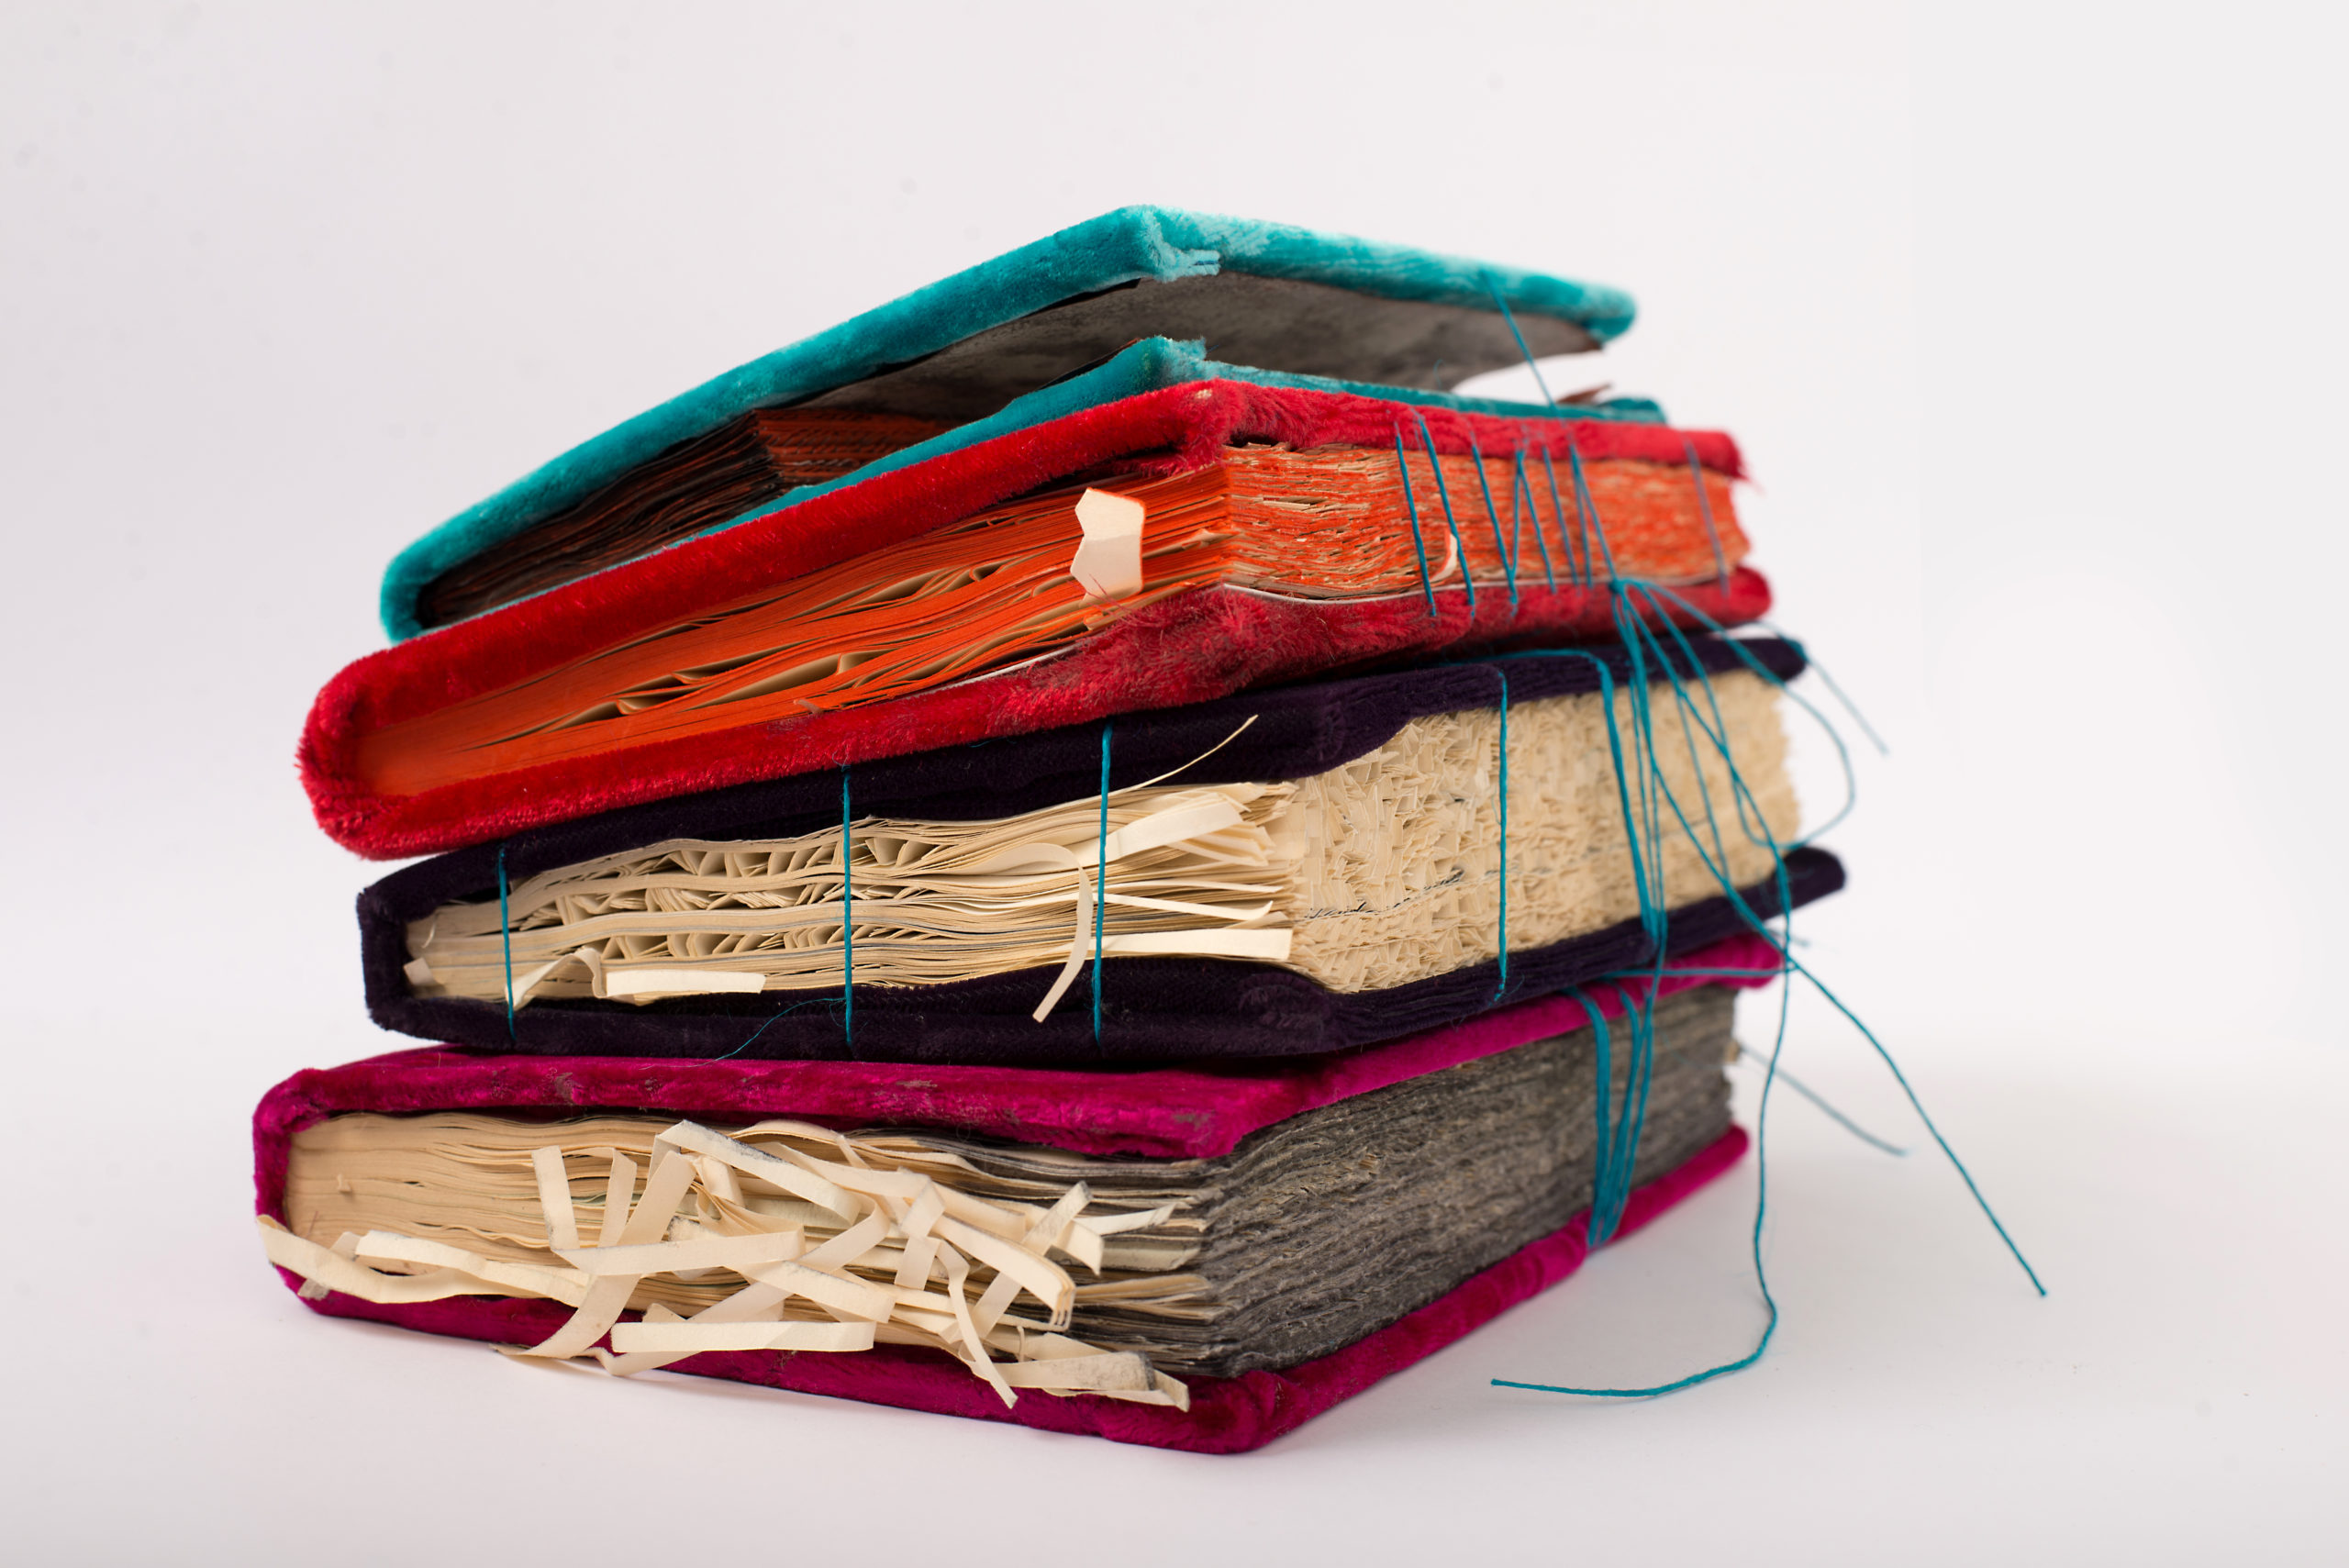 Four books of multiple colors stacked on top of each other, the covers are made of velvet and the pages are frayed. There are teal colored threads coming out of the second book, which is red with orange pages